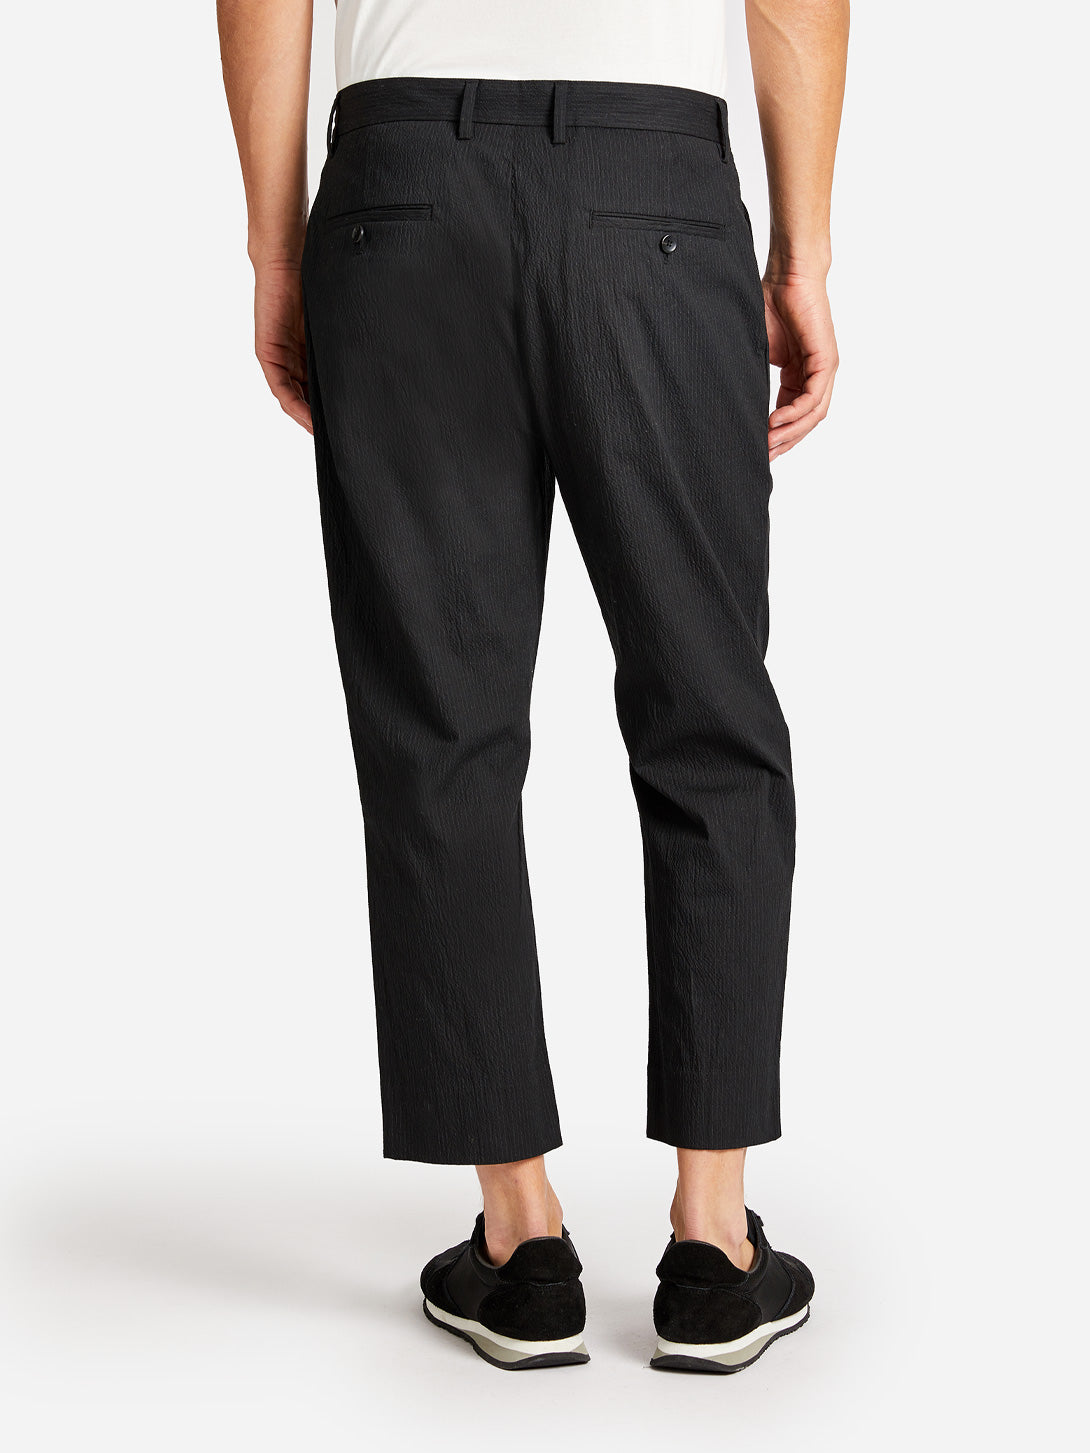 COUNDUIT PACKABLE PANT JET BLACK ONS CLOTHING